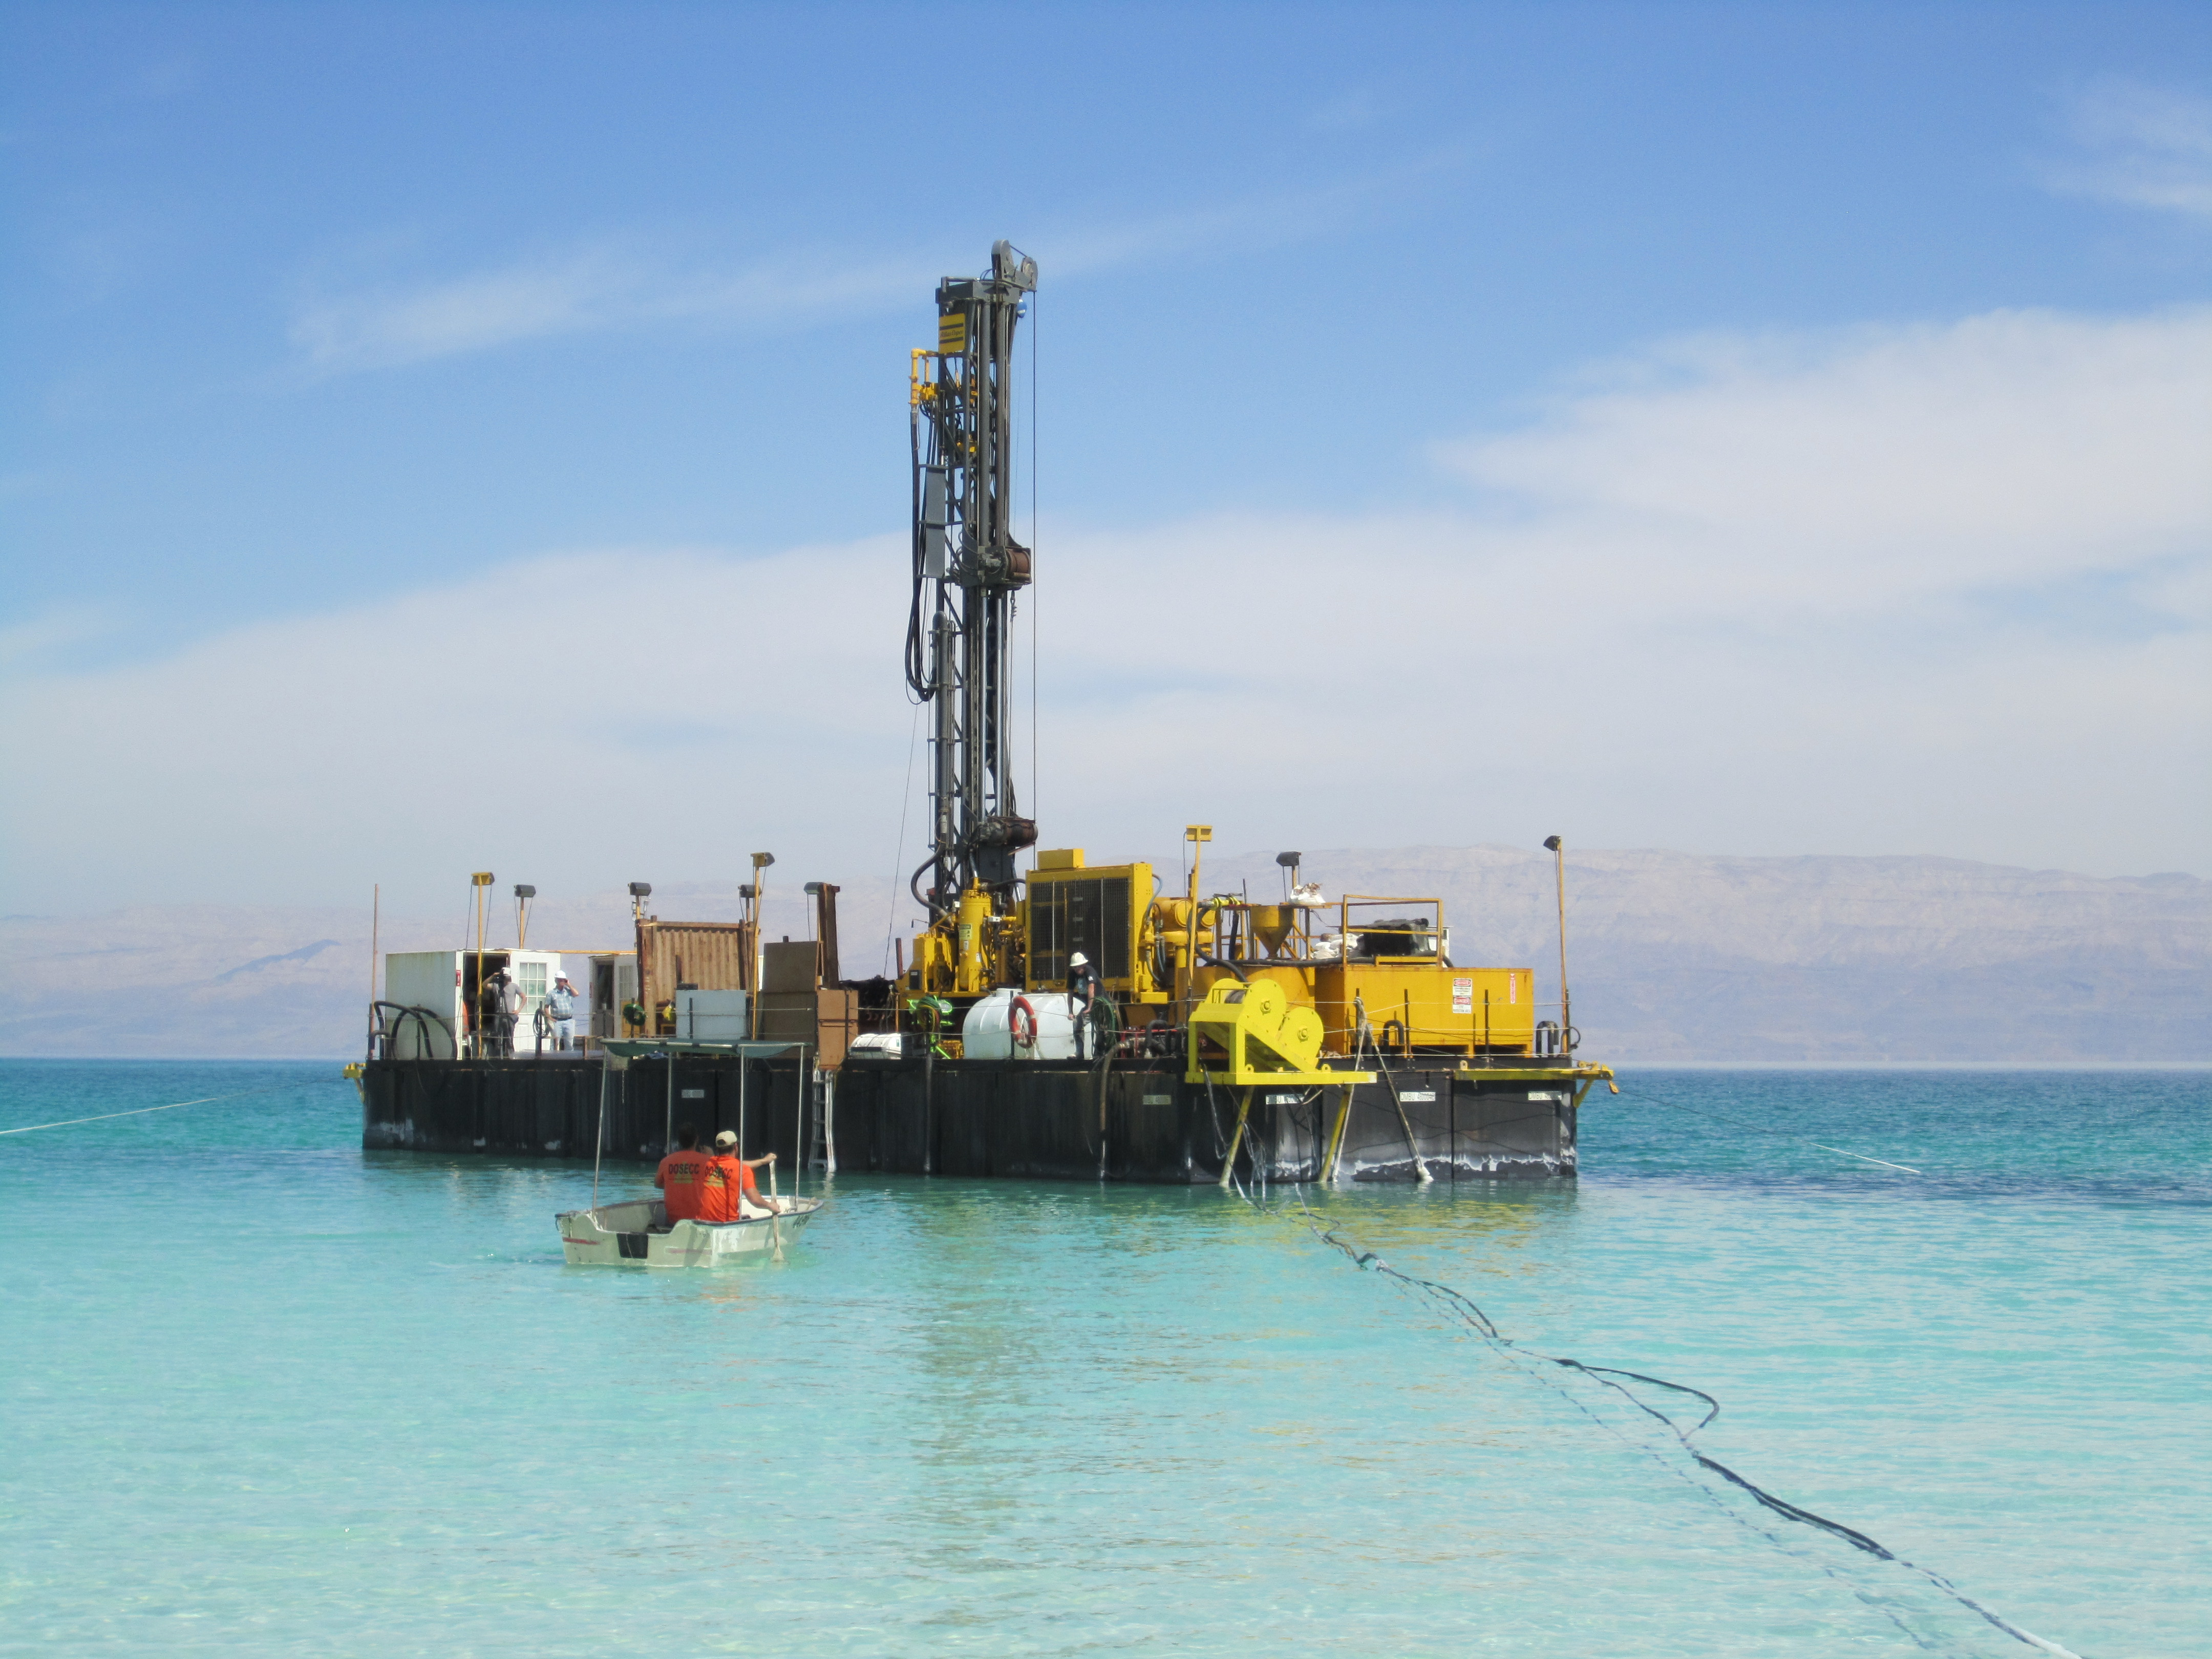 Dead Sea scientific core drilling company project, located in Ein Gedi, Israel